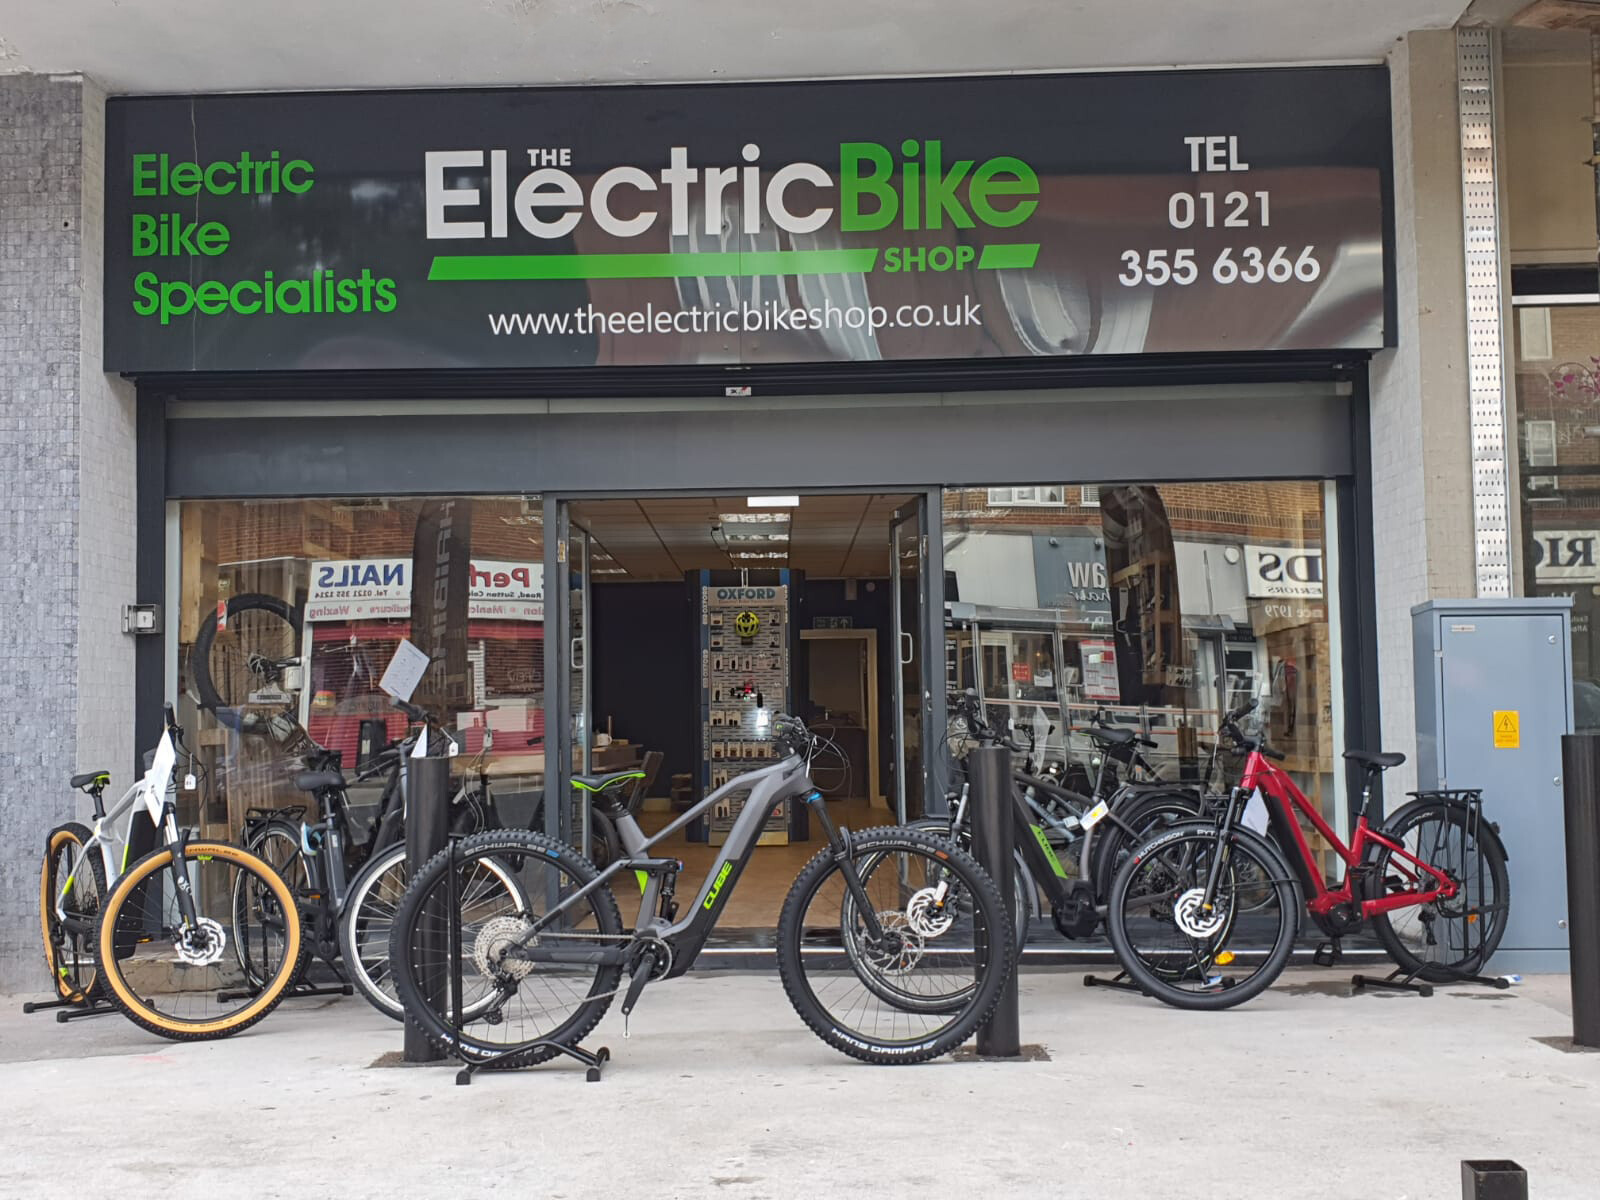 The Electric Bike Shop Sutton Coldfield